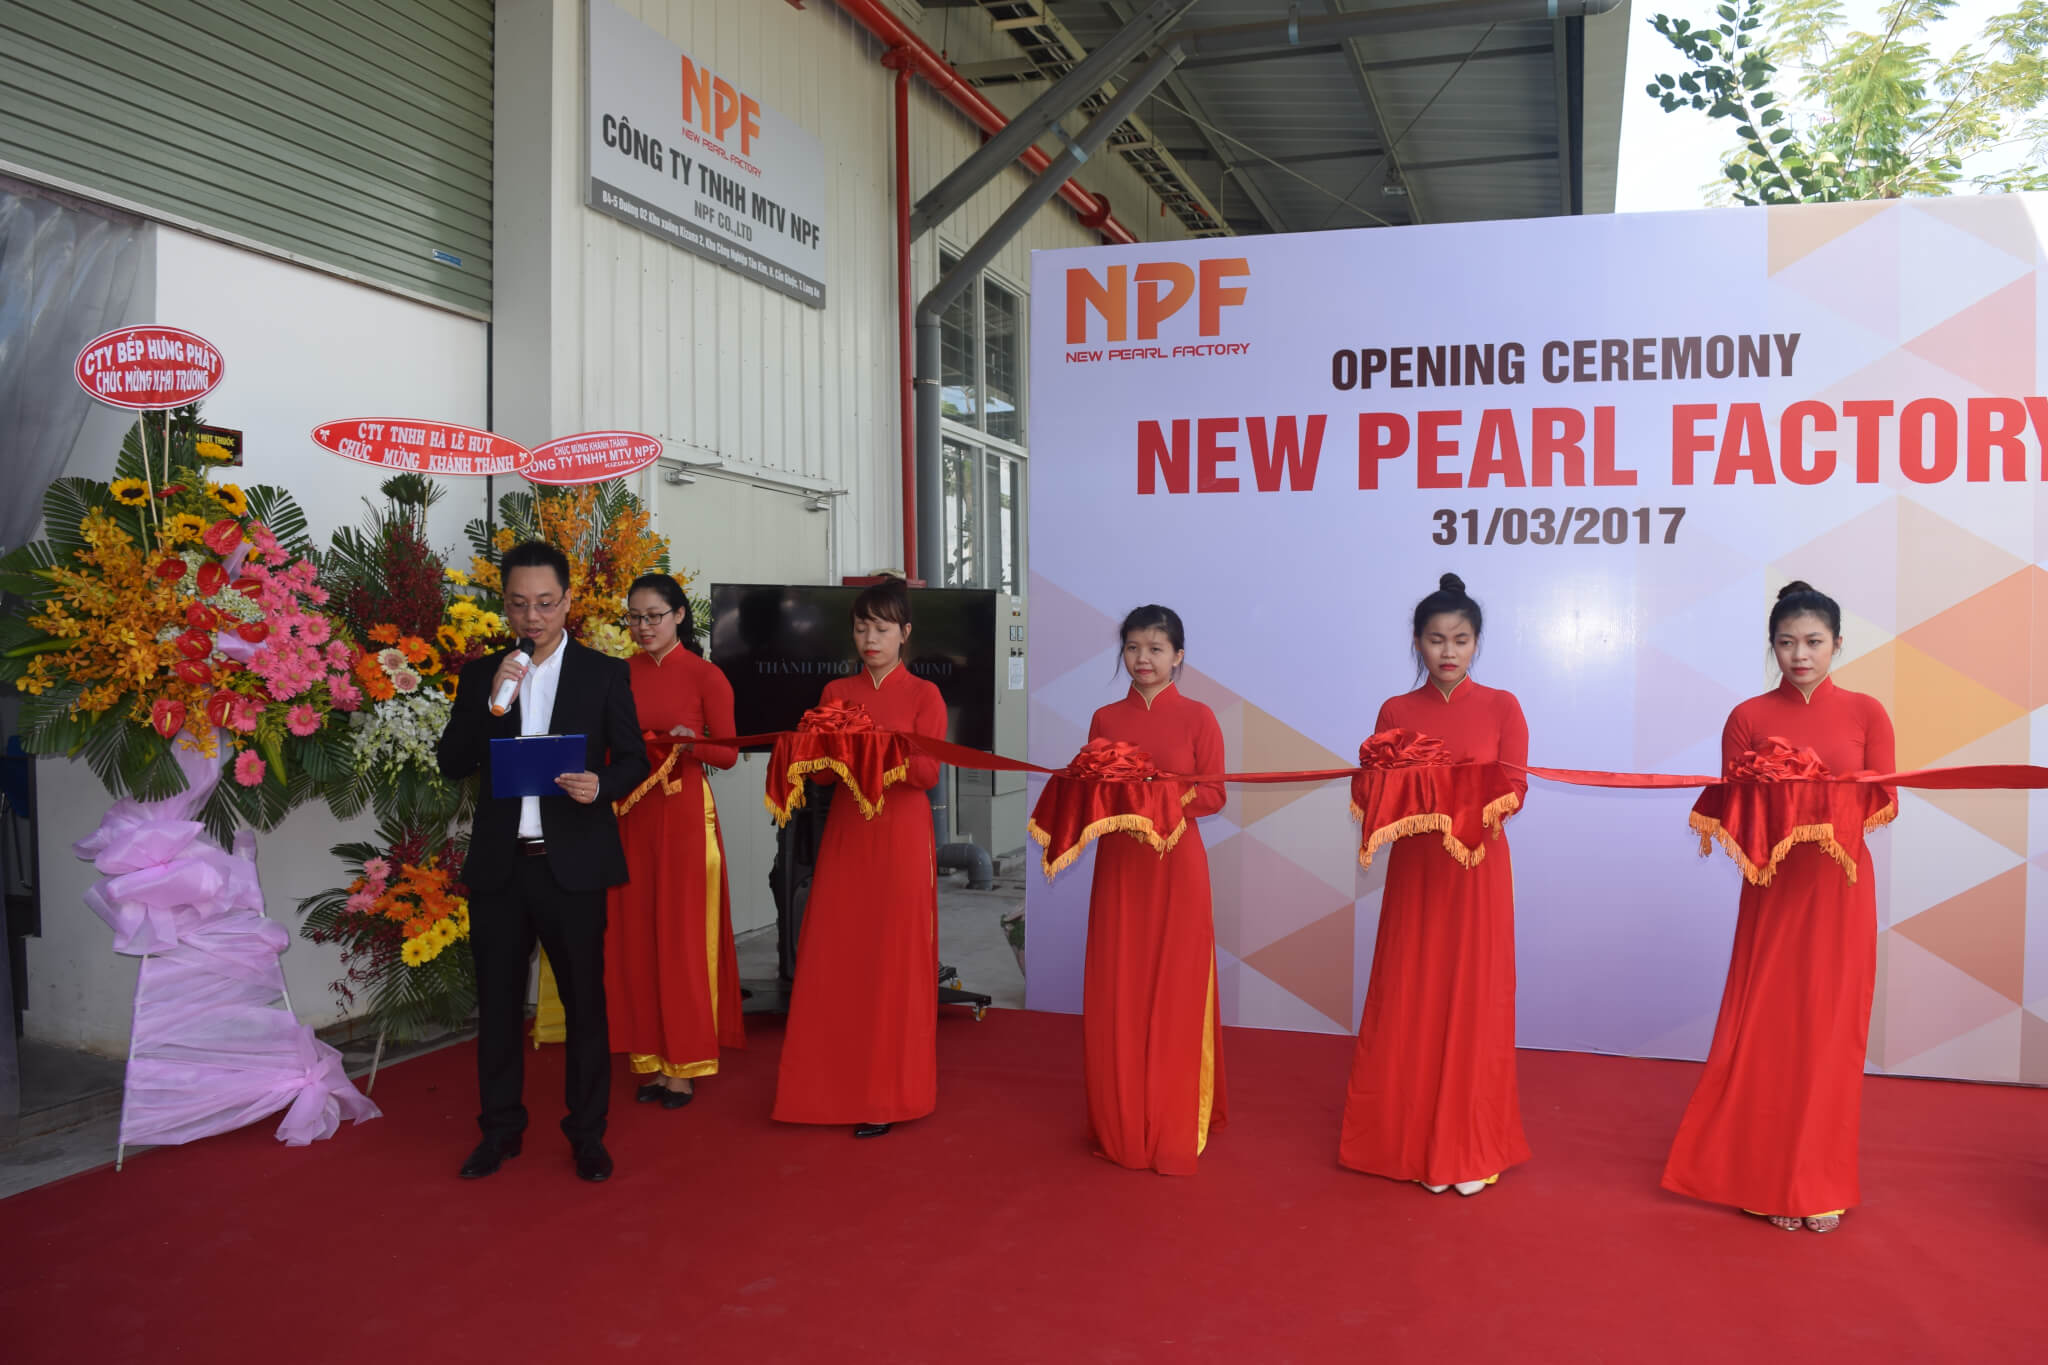 Mr. Phan Ba Ngoc, President cum CEO of New Pearl, made a speech at the ceremony